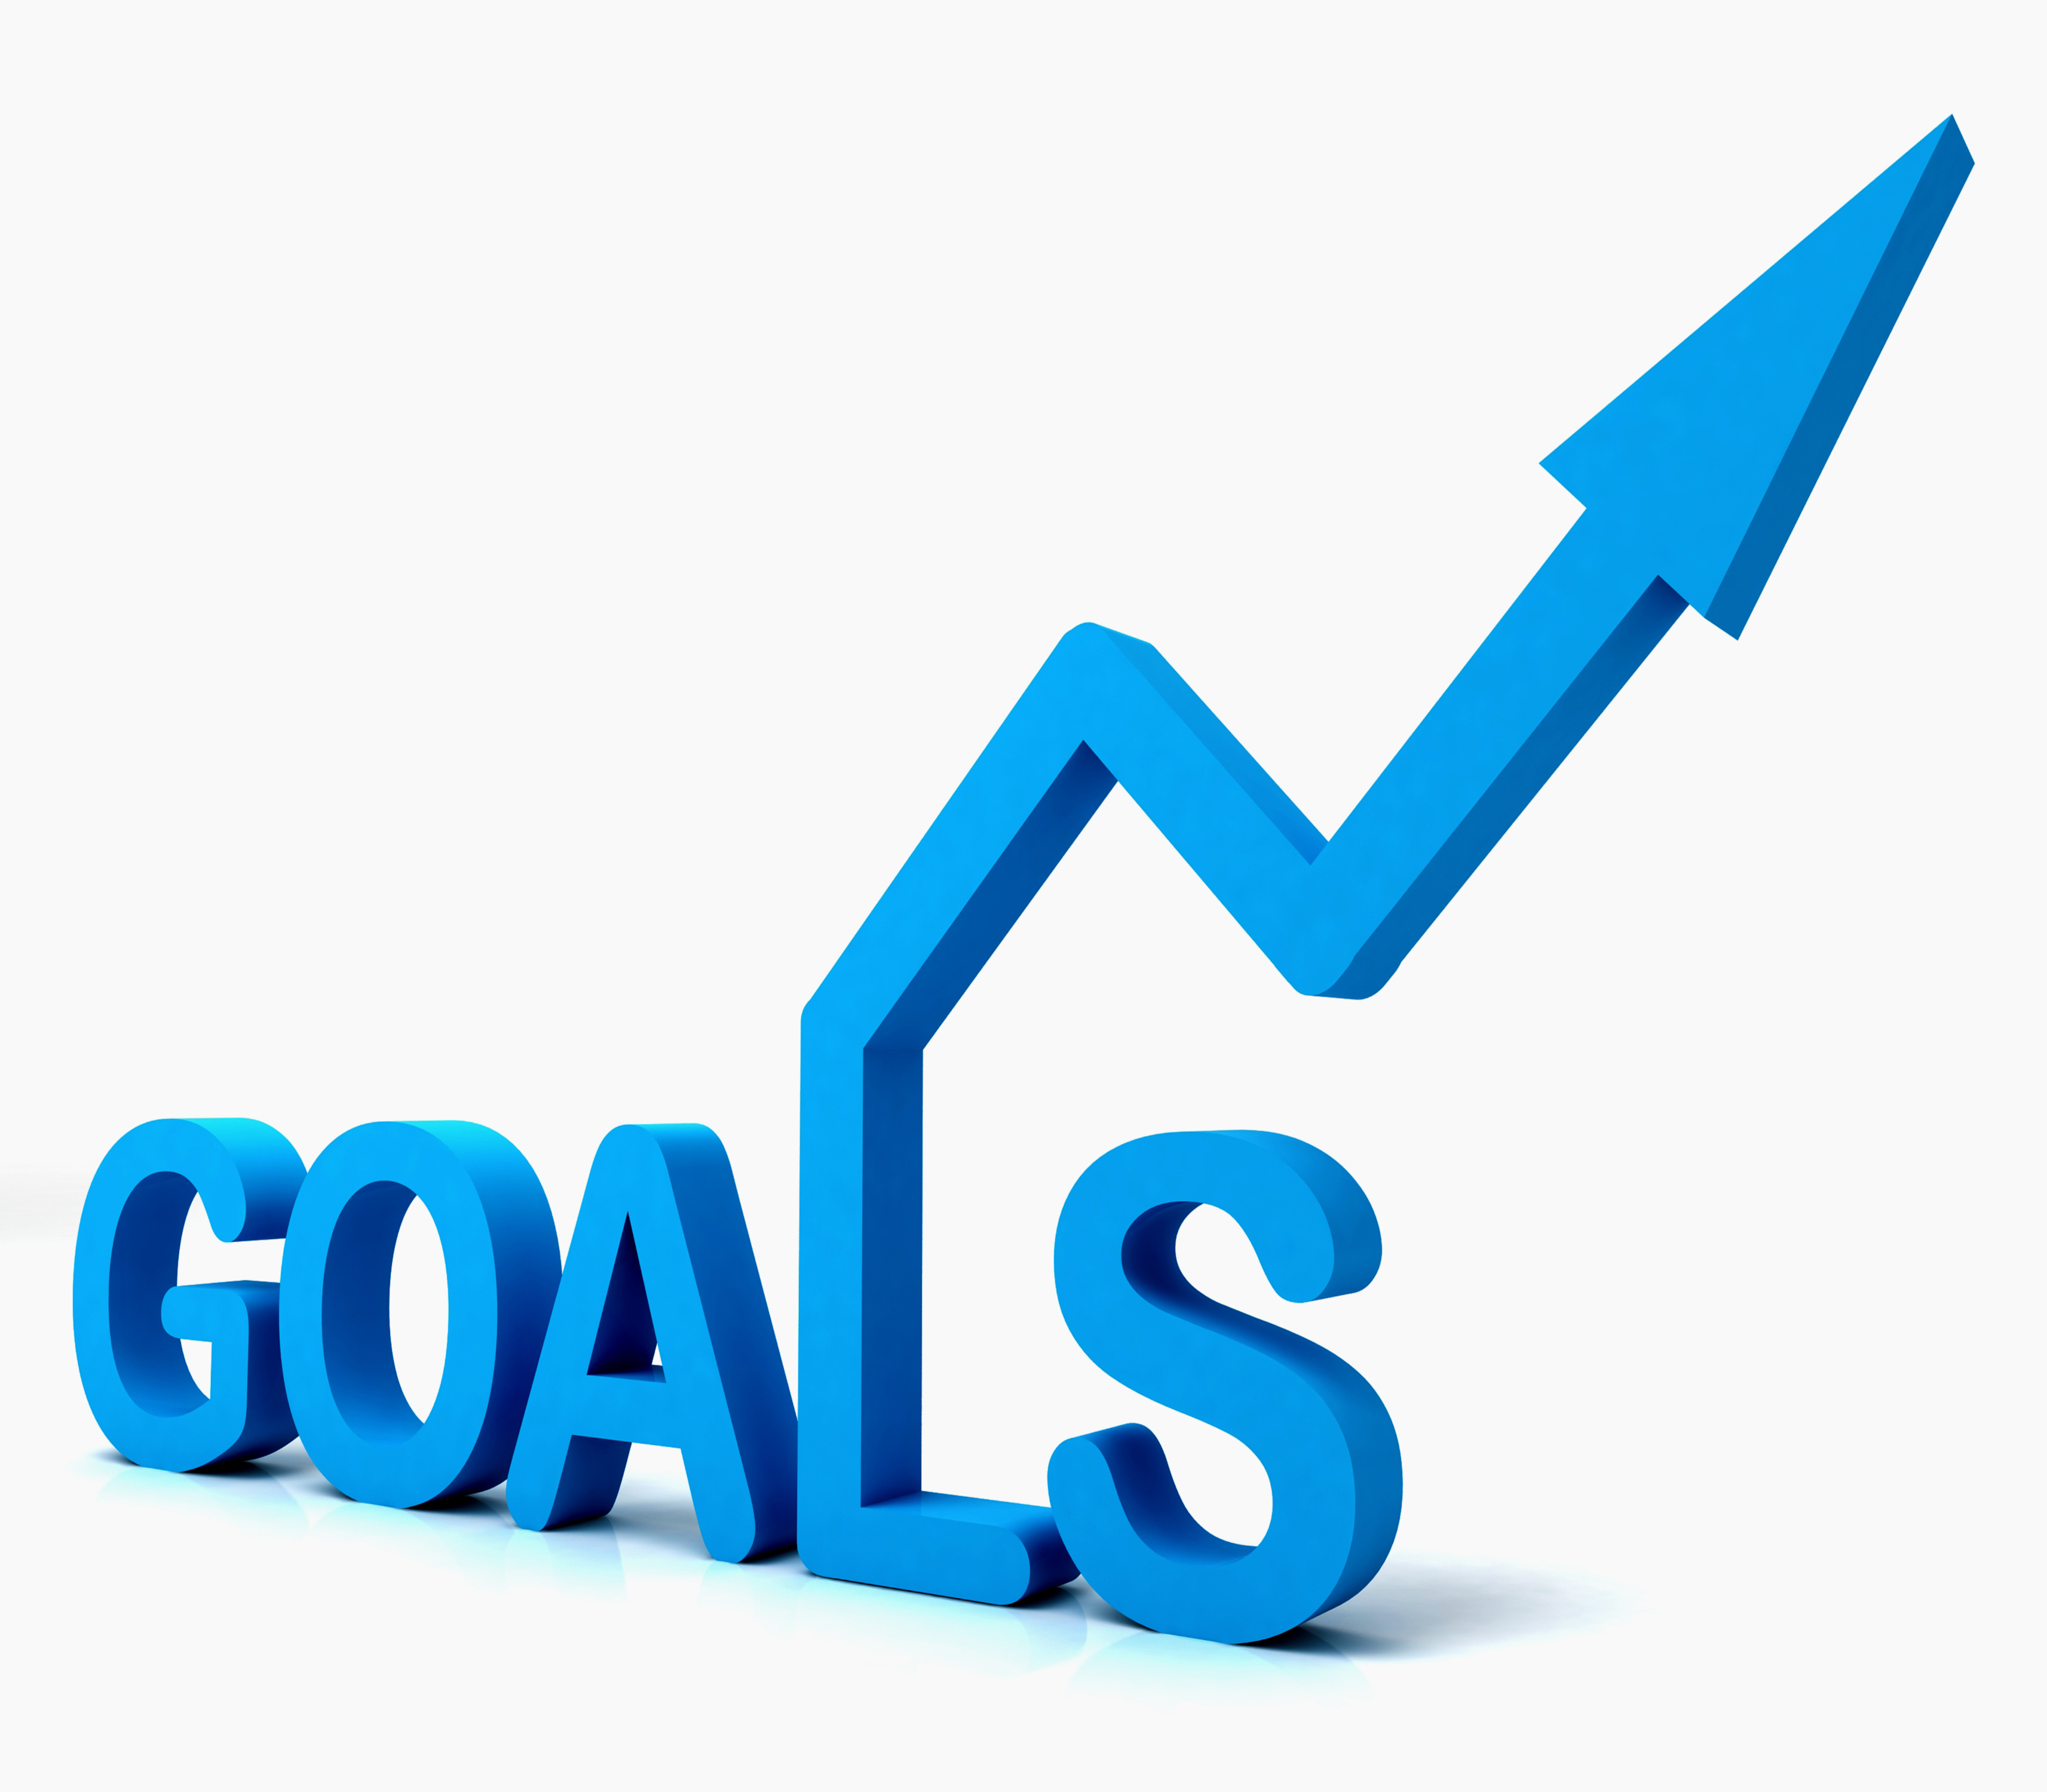 blue goals word shows objectives hope and future from clip art devilish clip art devil horns